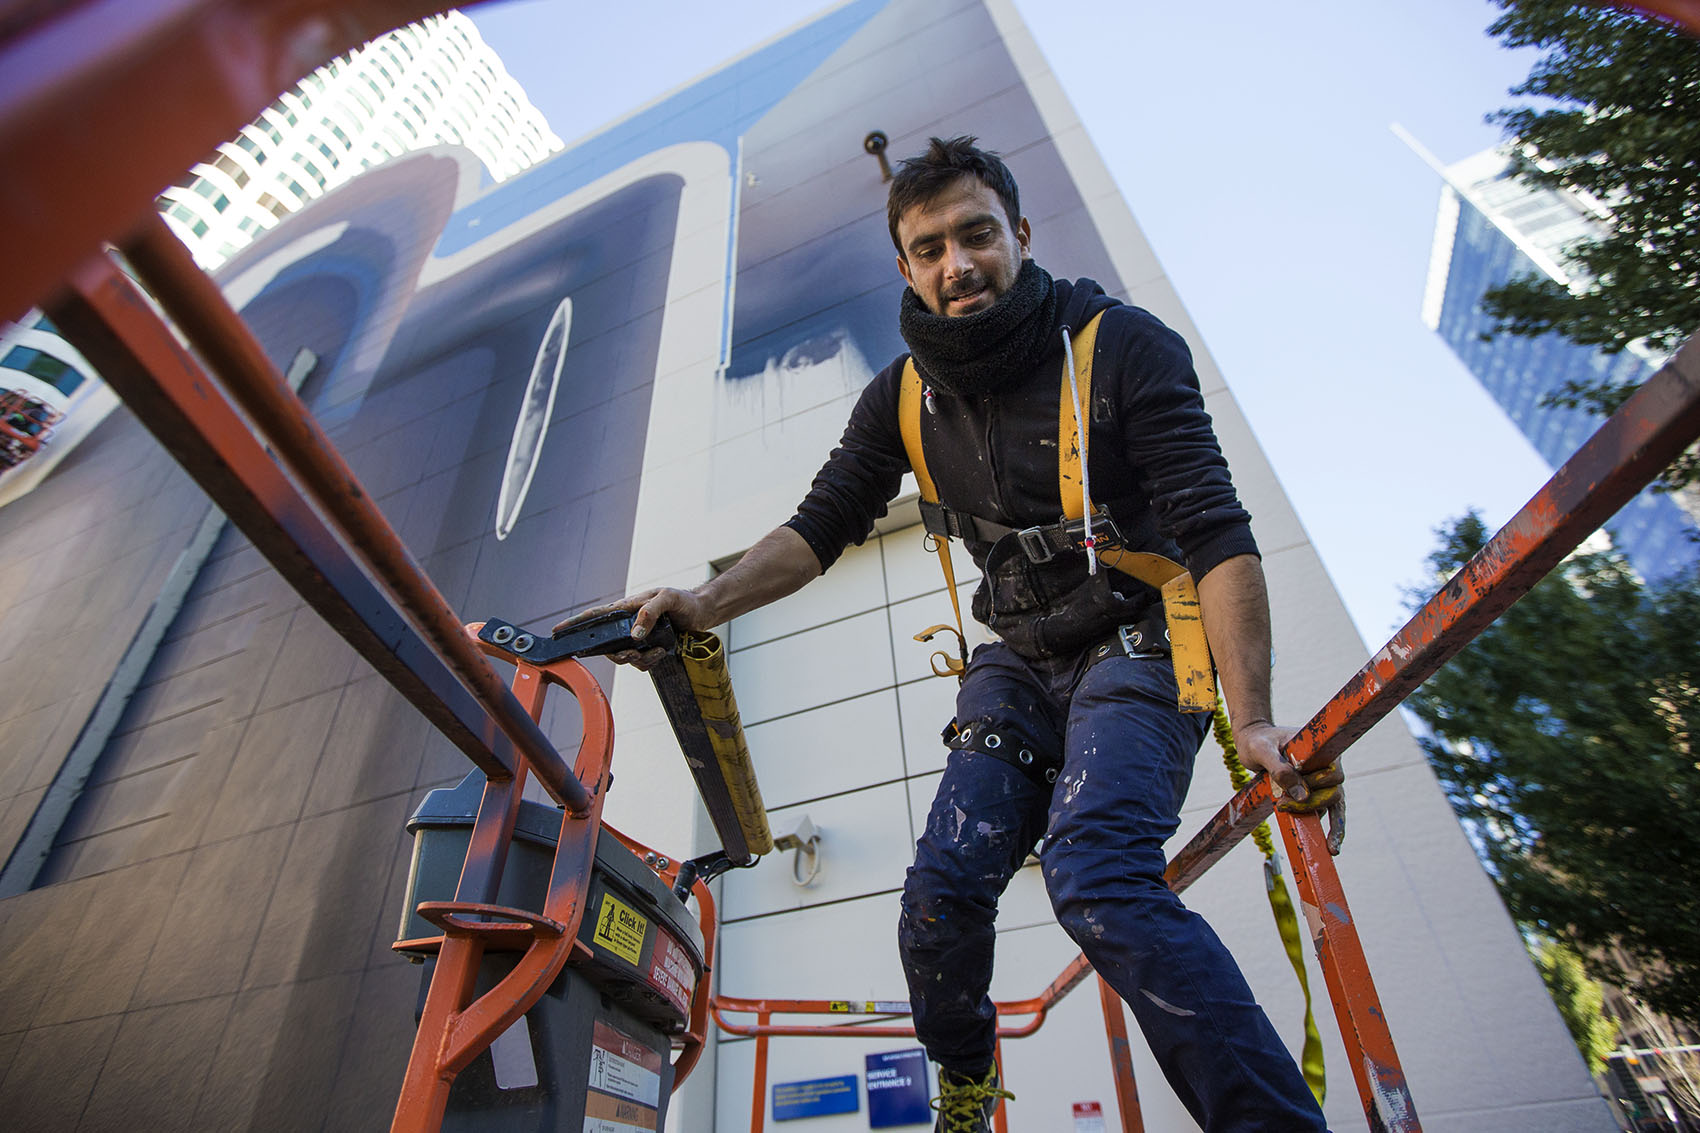 Iranian artist Mehdi Ghadyanloo climbs into a cherry picker as he works on the latest mural to go up on the Rose Kennedy Greenway in Dewey Square. (Jesse Costa/WBUR)